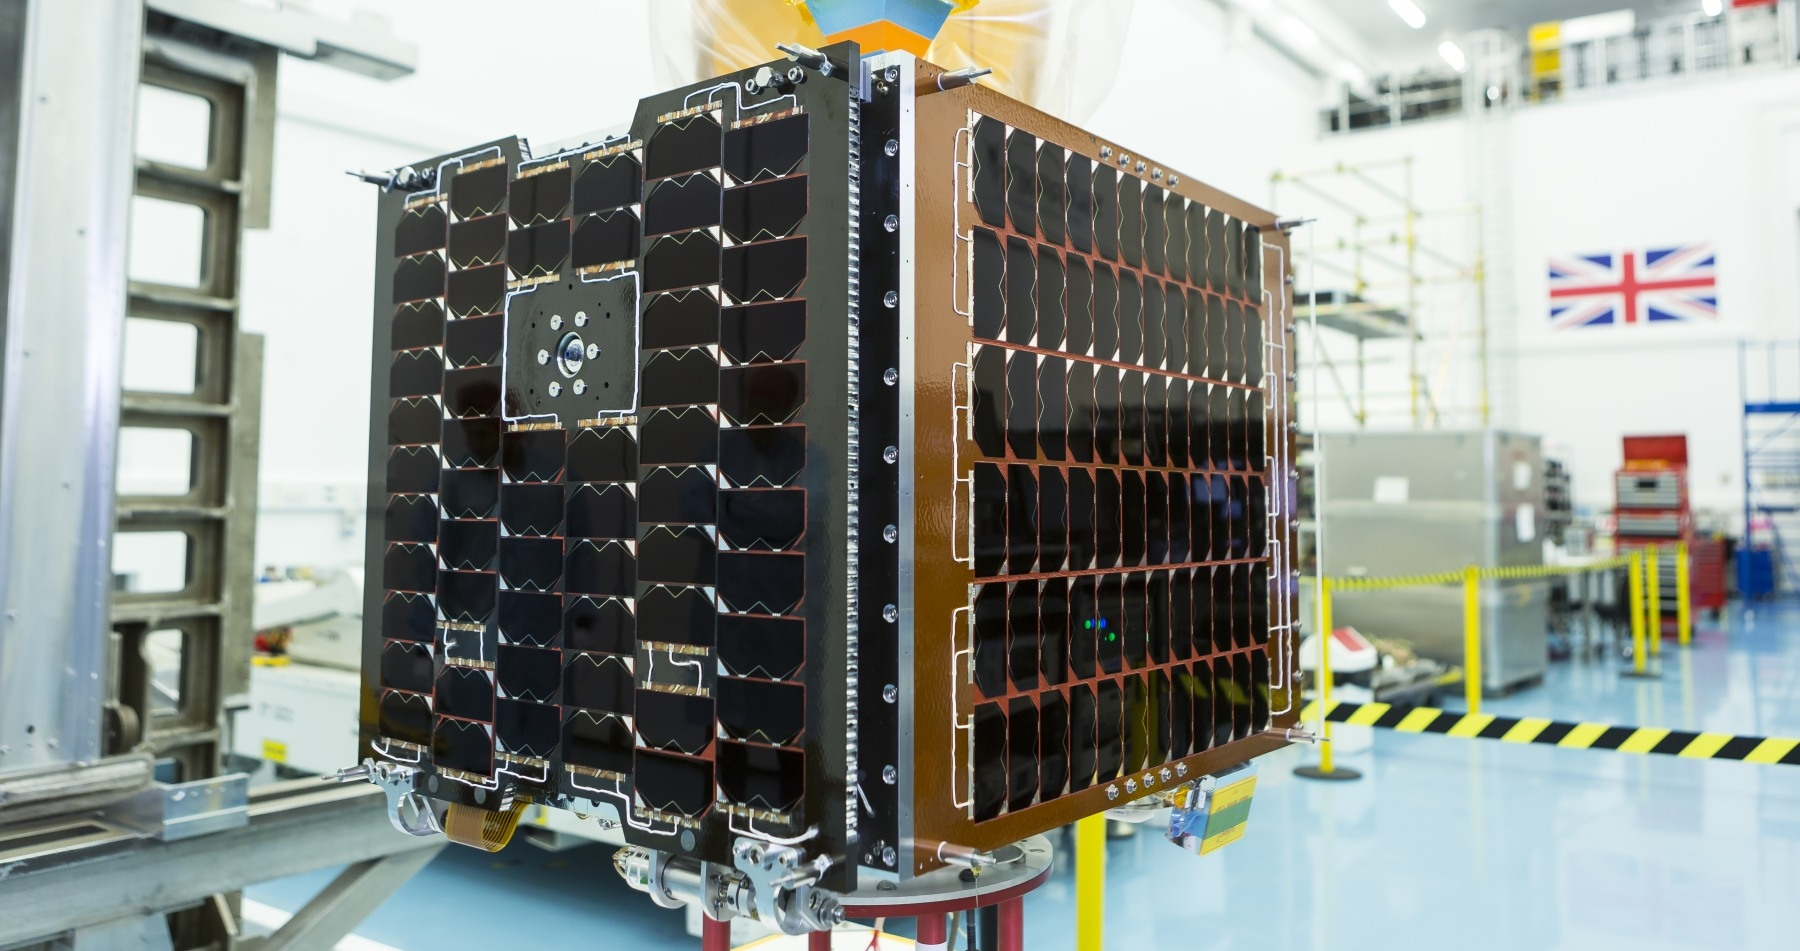 Prototype satellite makes way for 4K 'Earth observation' | DeviceDaily.com